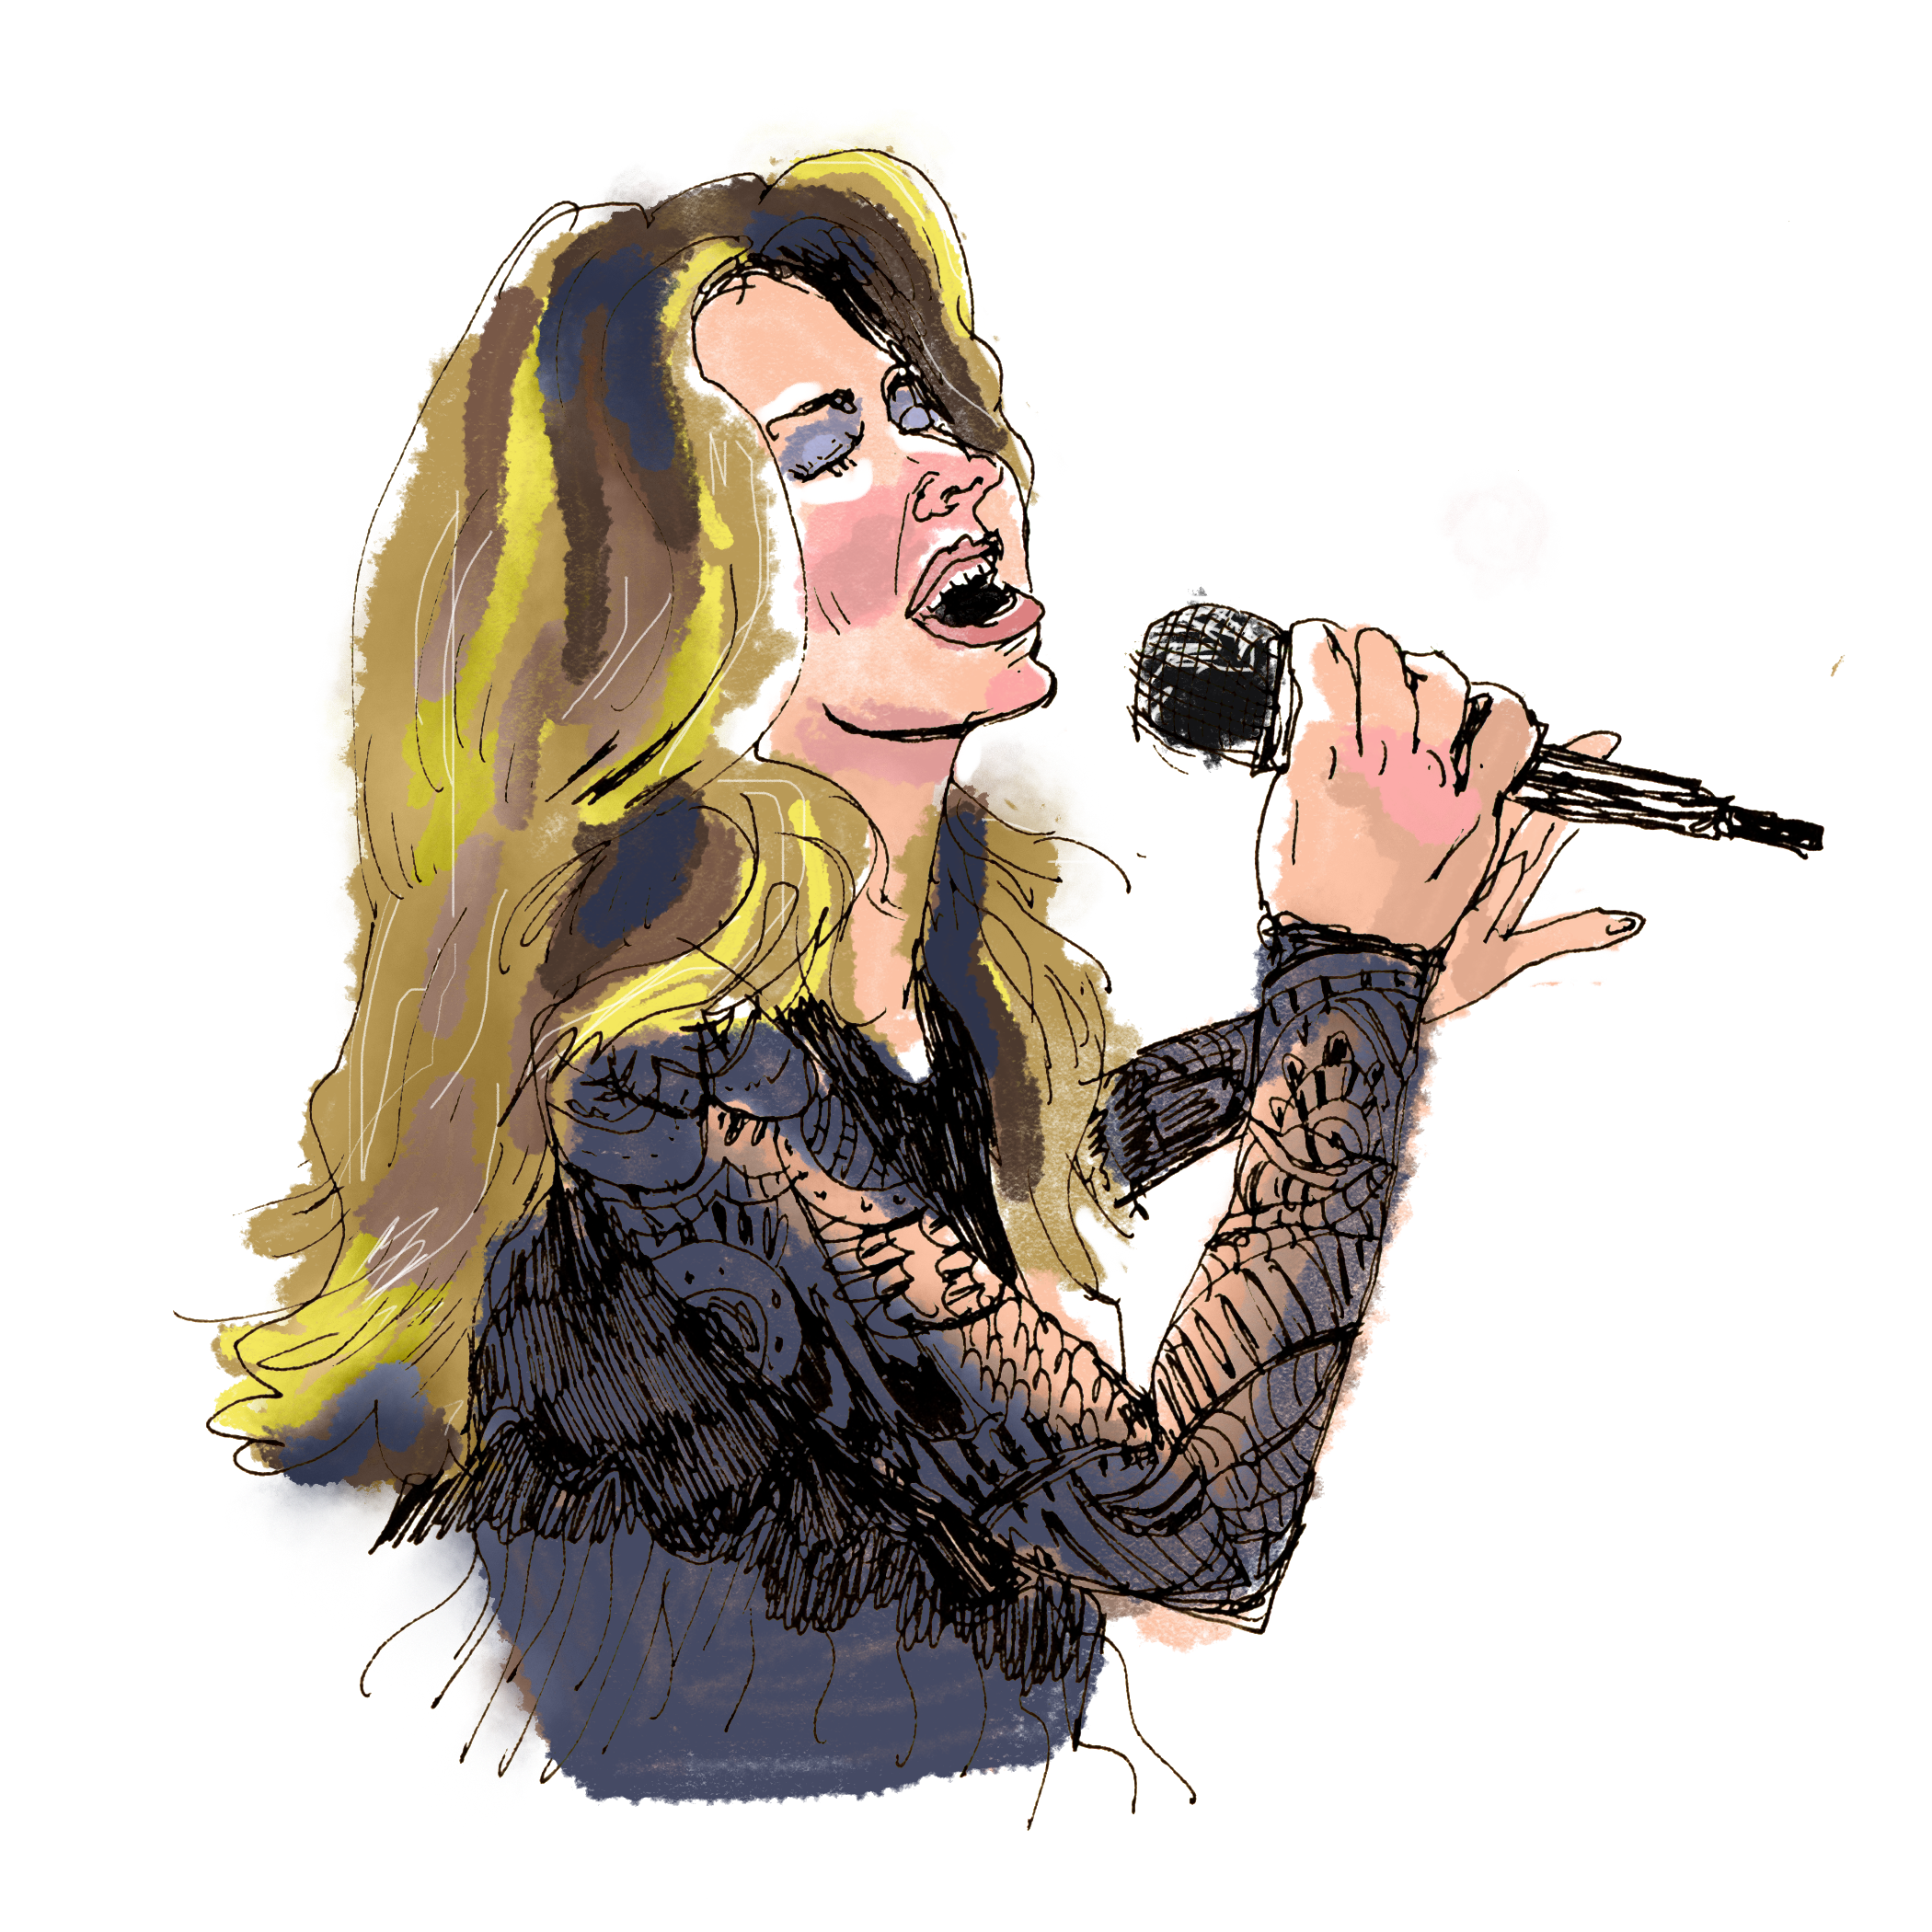 Sing drawing beyonce. Shania twain then and